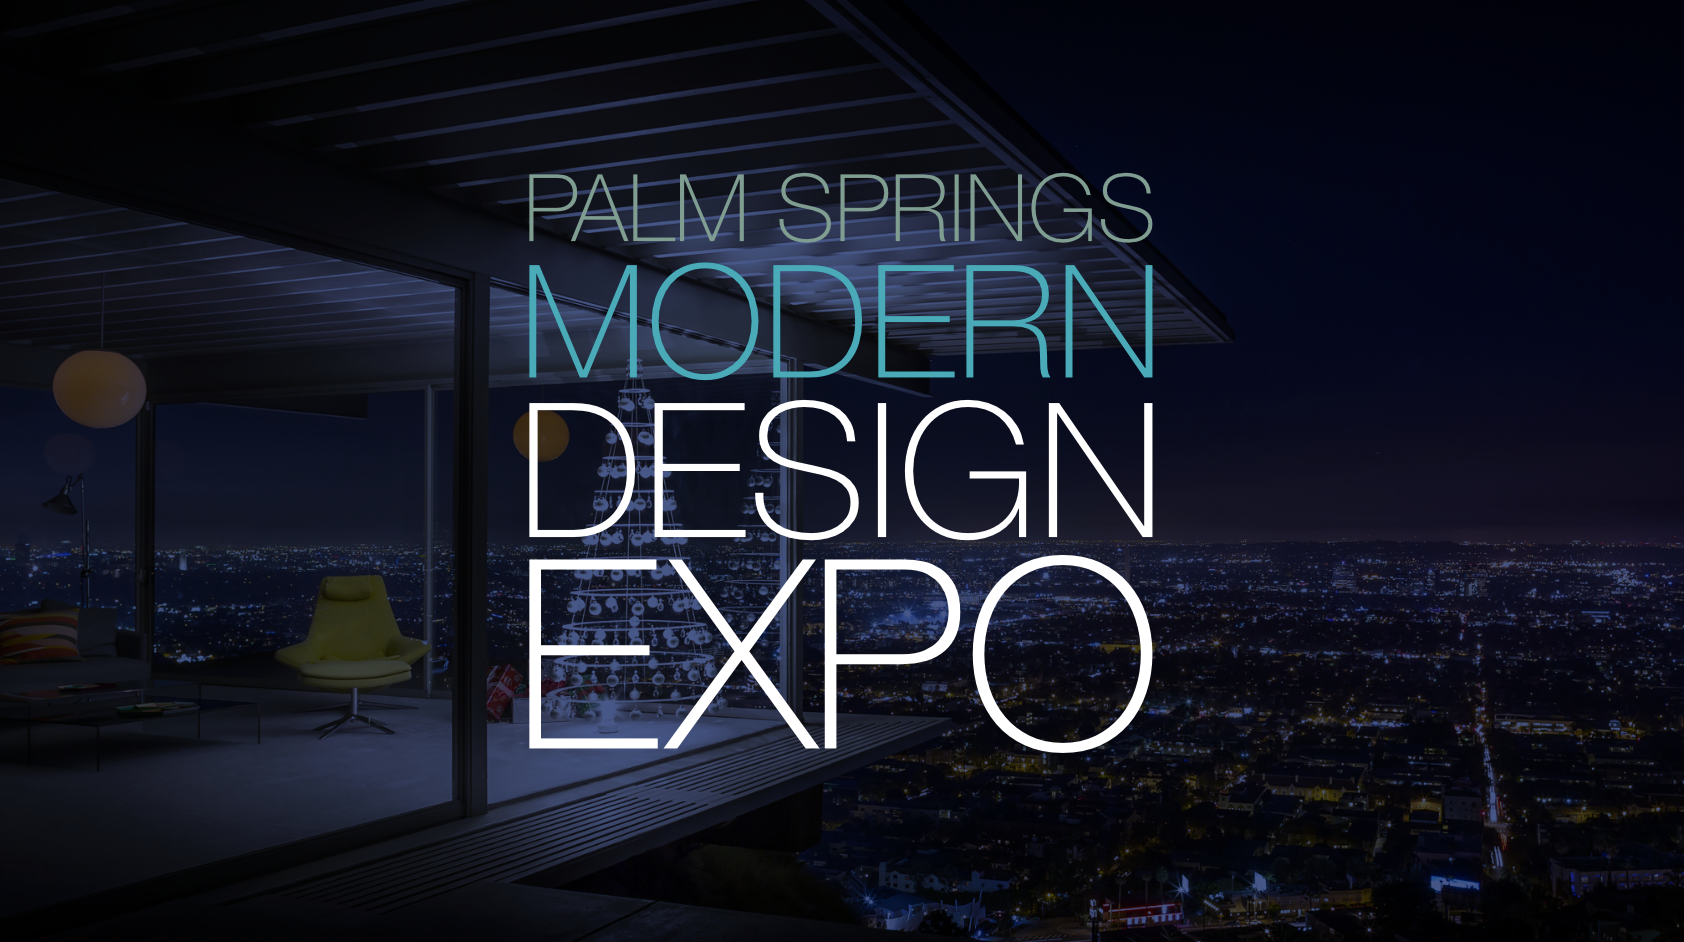 Palm Springs Modern Design Expo